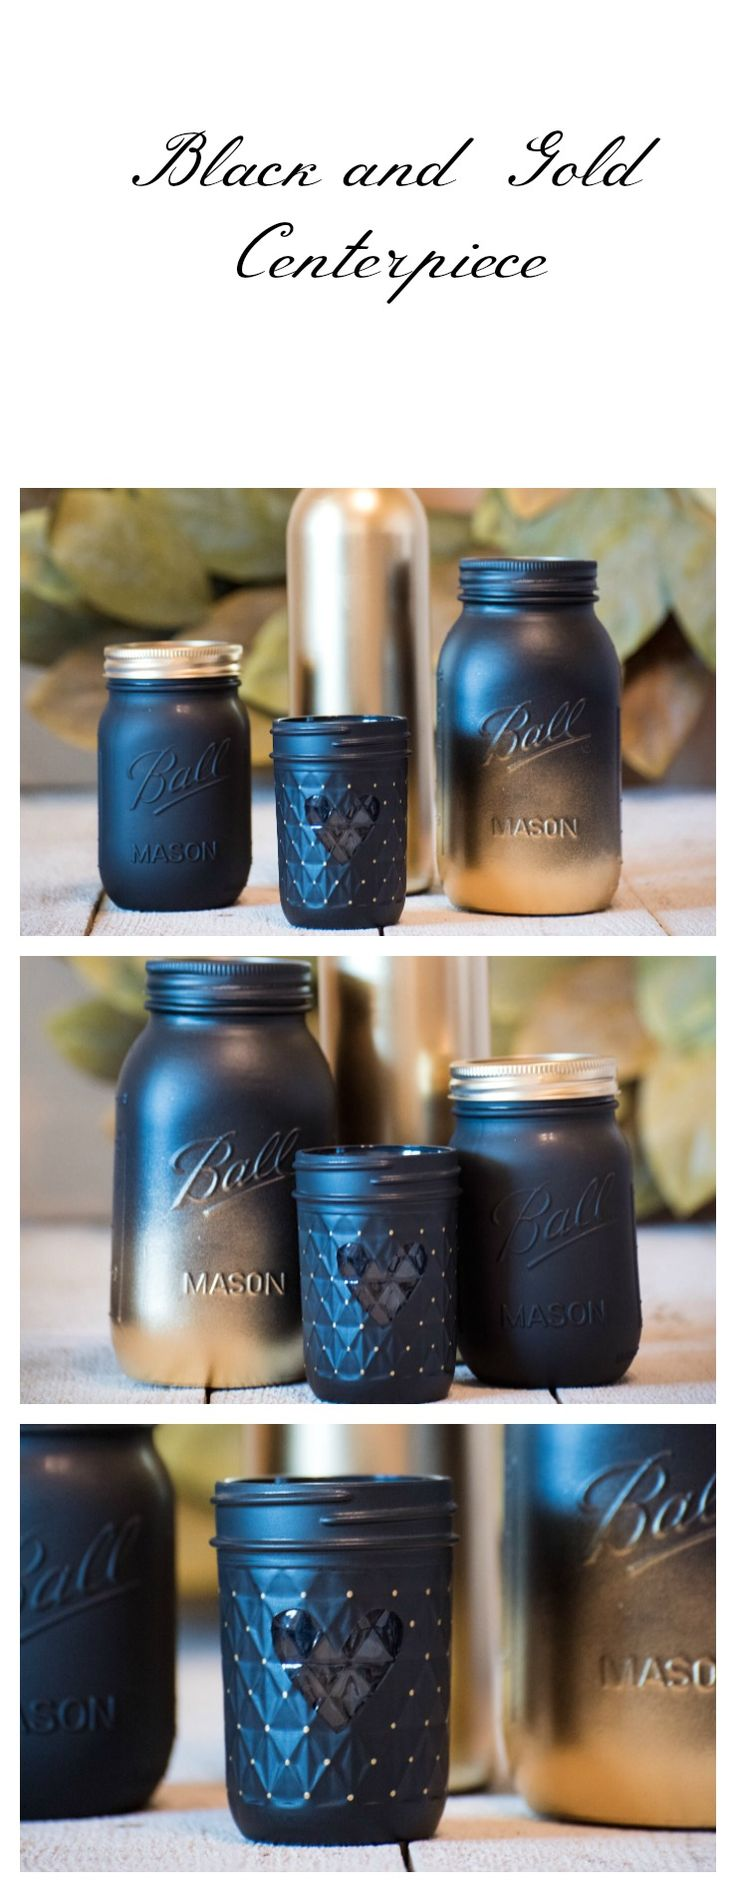 Mason Jar and Wine Bottle Wedding Centerpiece. Ombre Modern Decor. Gold and Black Rustic Decor. Farmhouse Chic Baby Shower. Interior Design. Katiebluechic. Southern Living